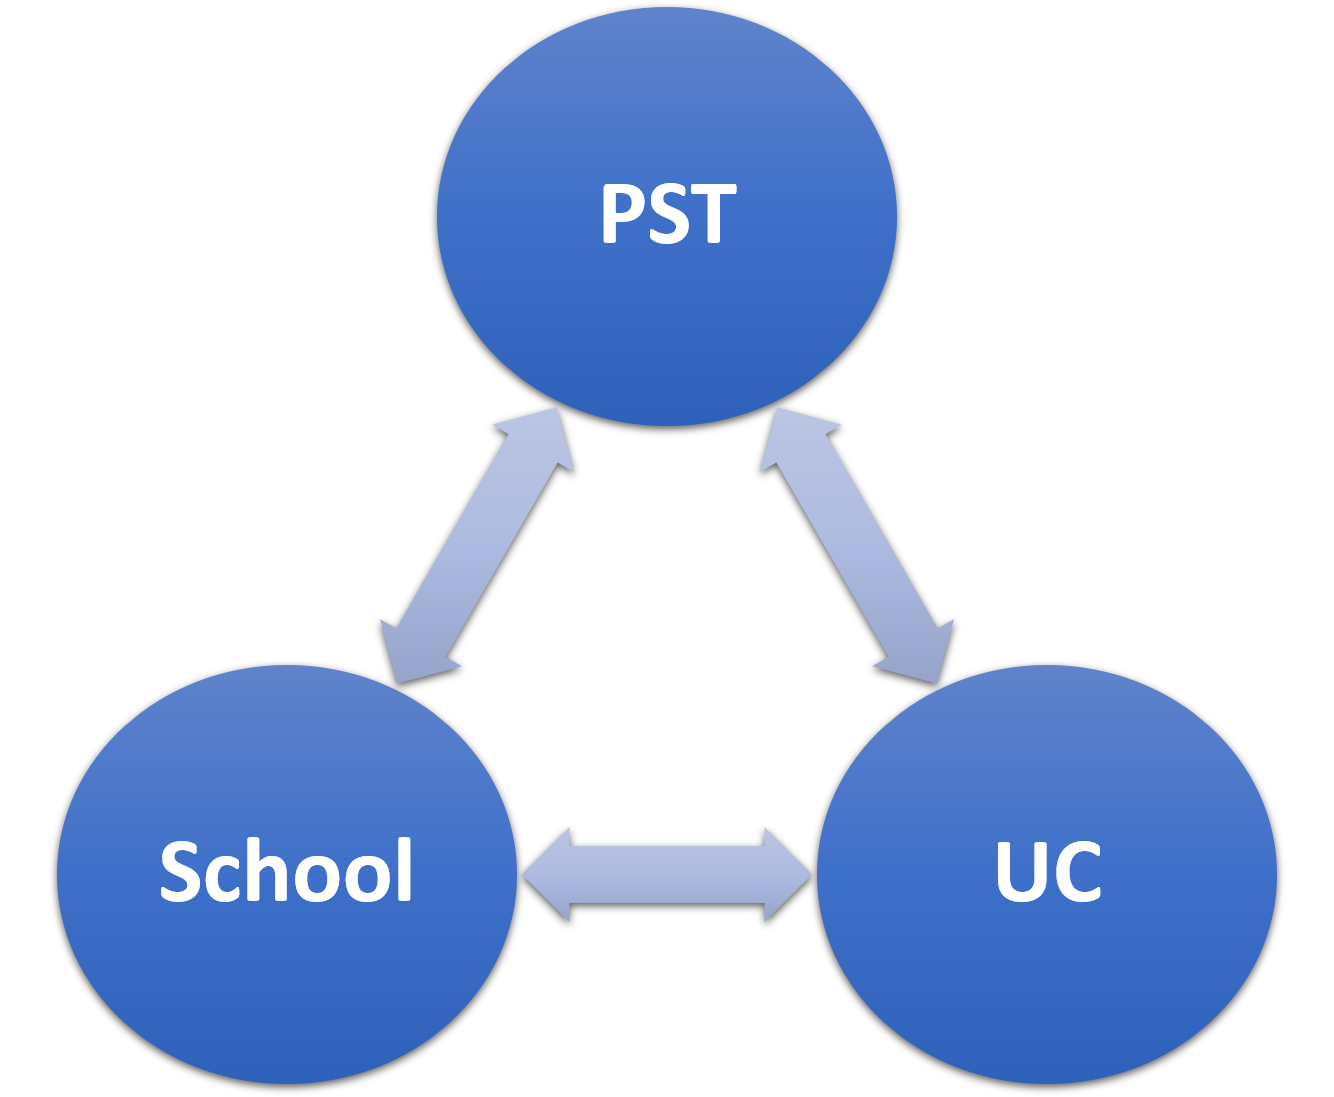 PST School UC interrelationships